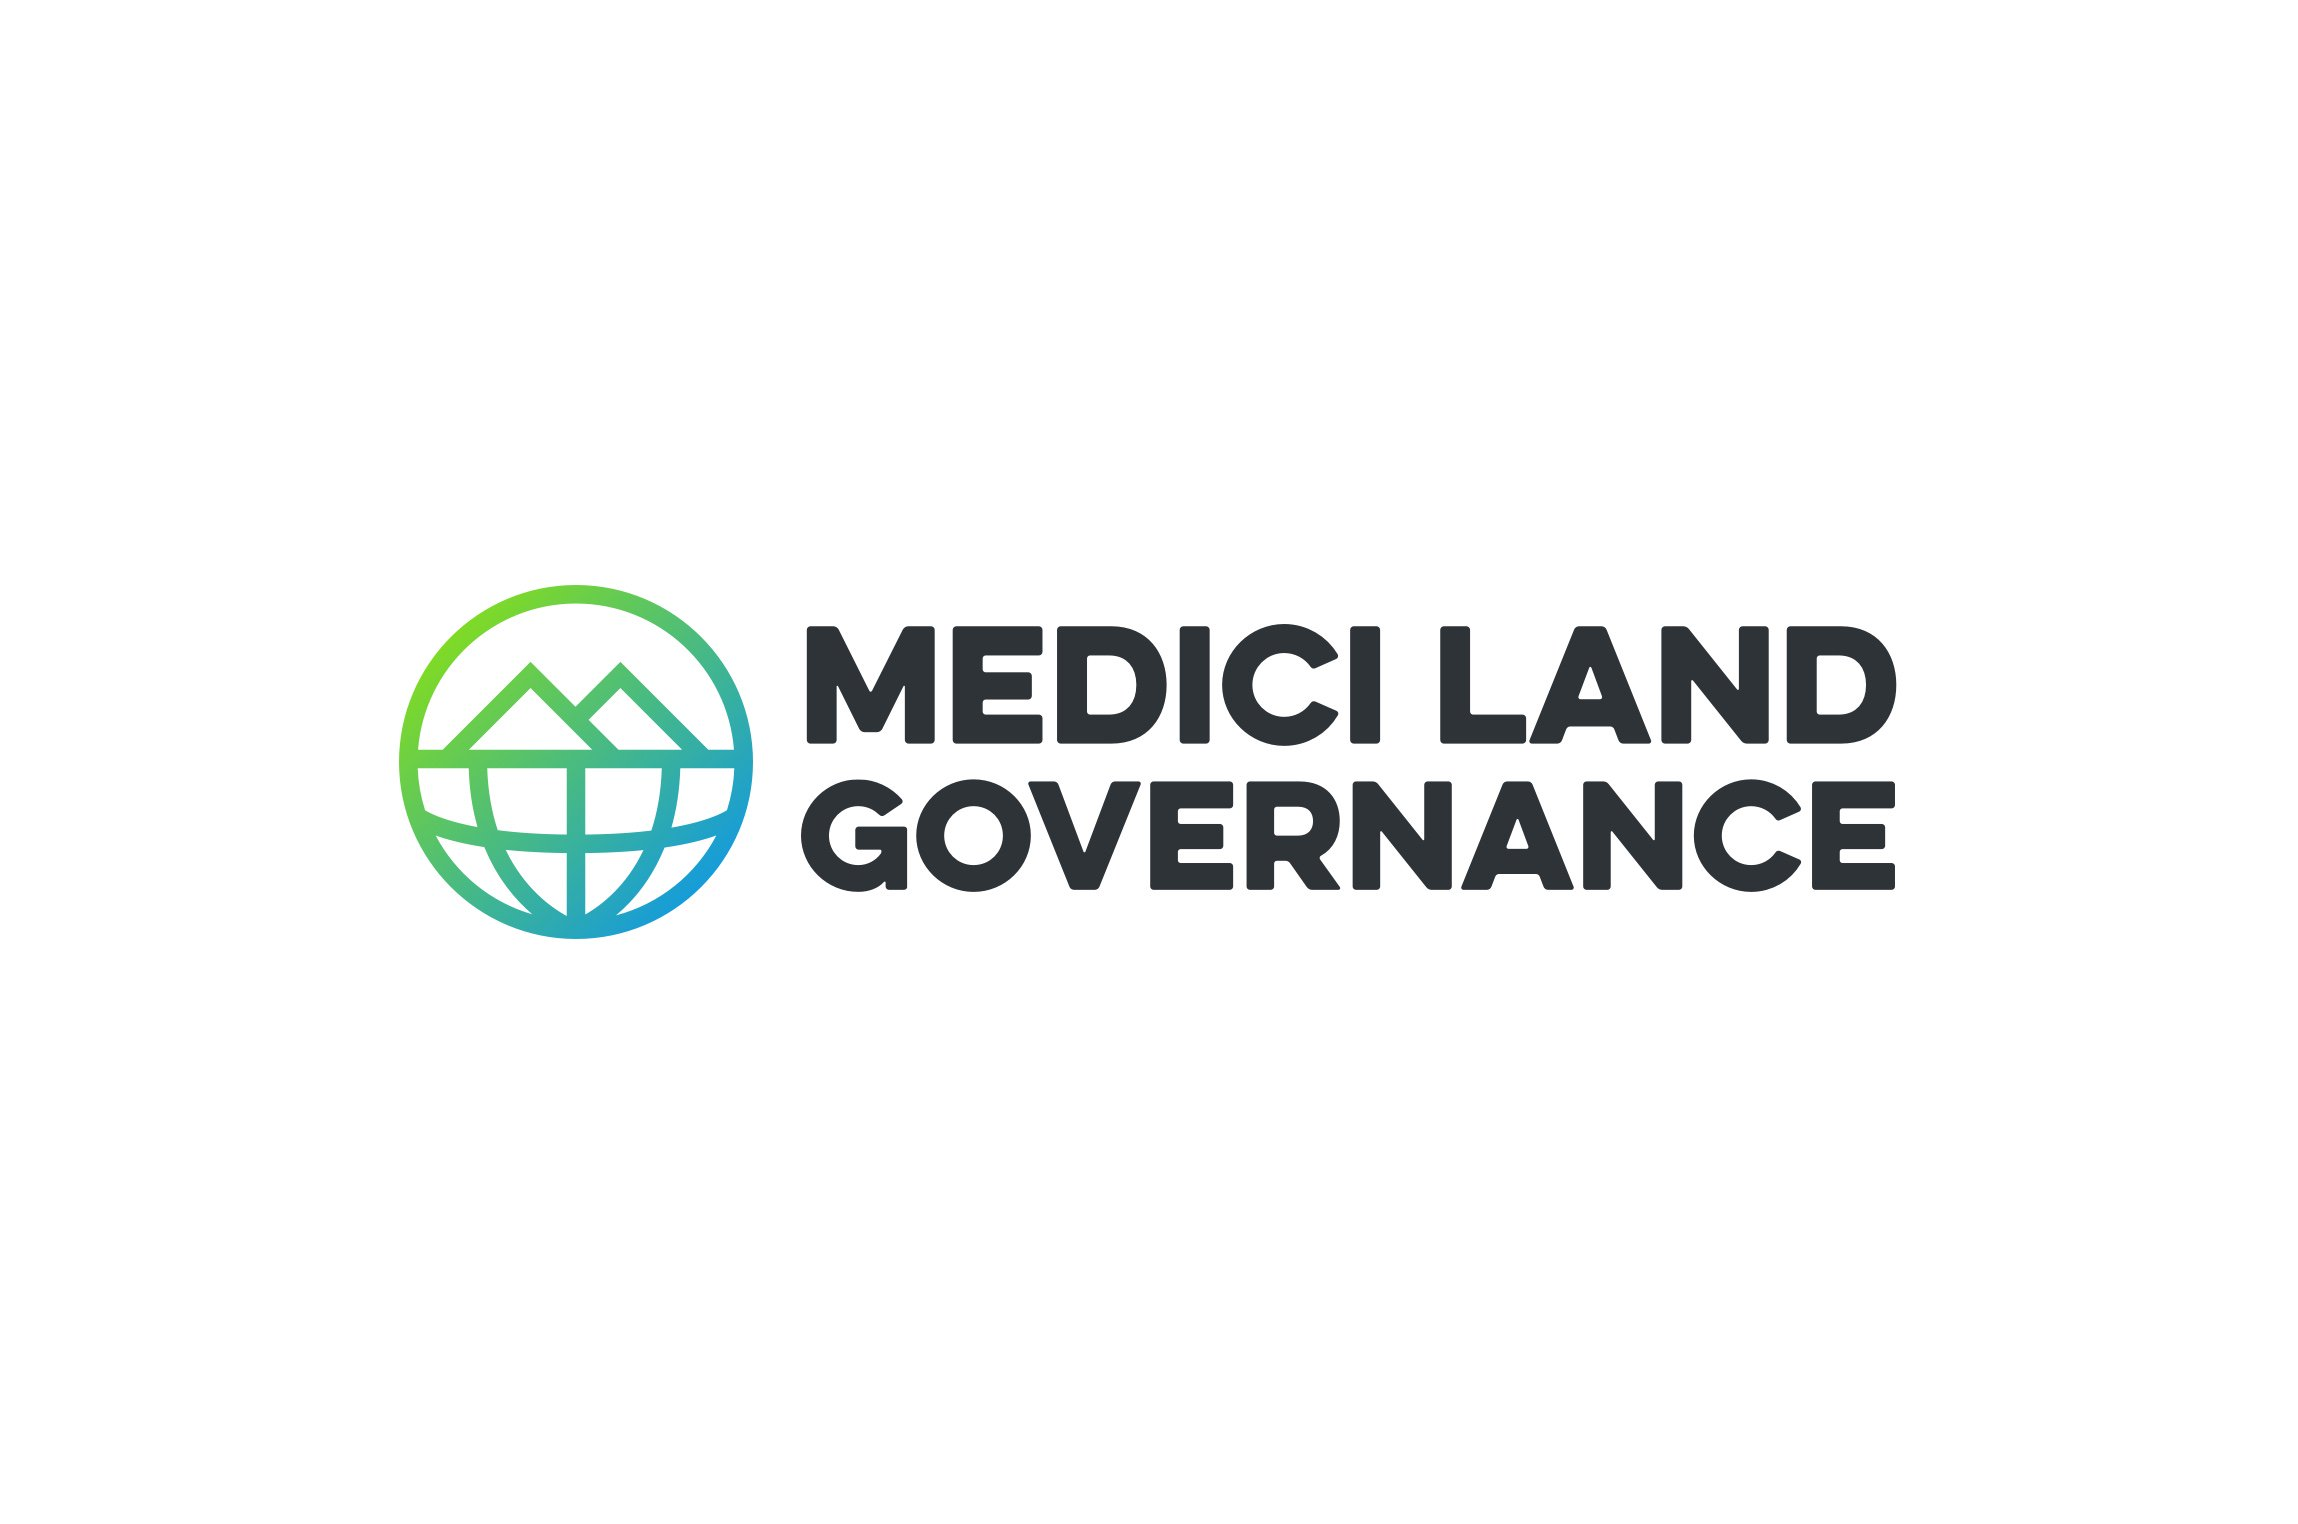 Wyoming's Teton County, Medici Land Governance to register land records on blockchain